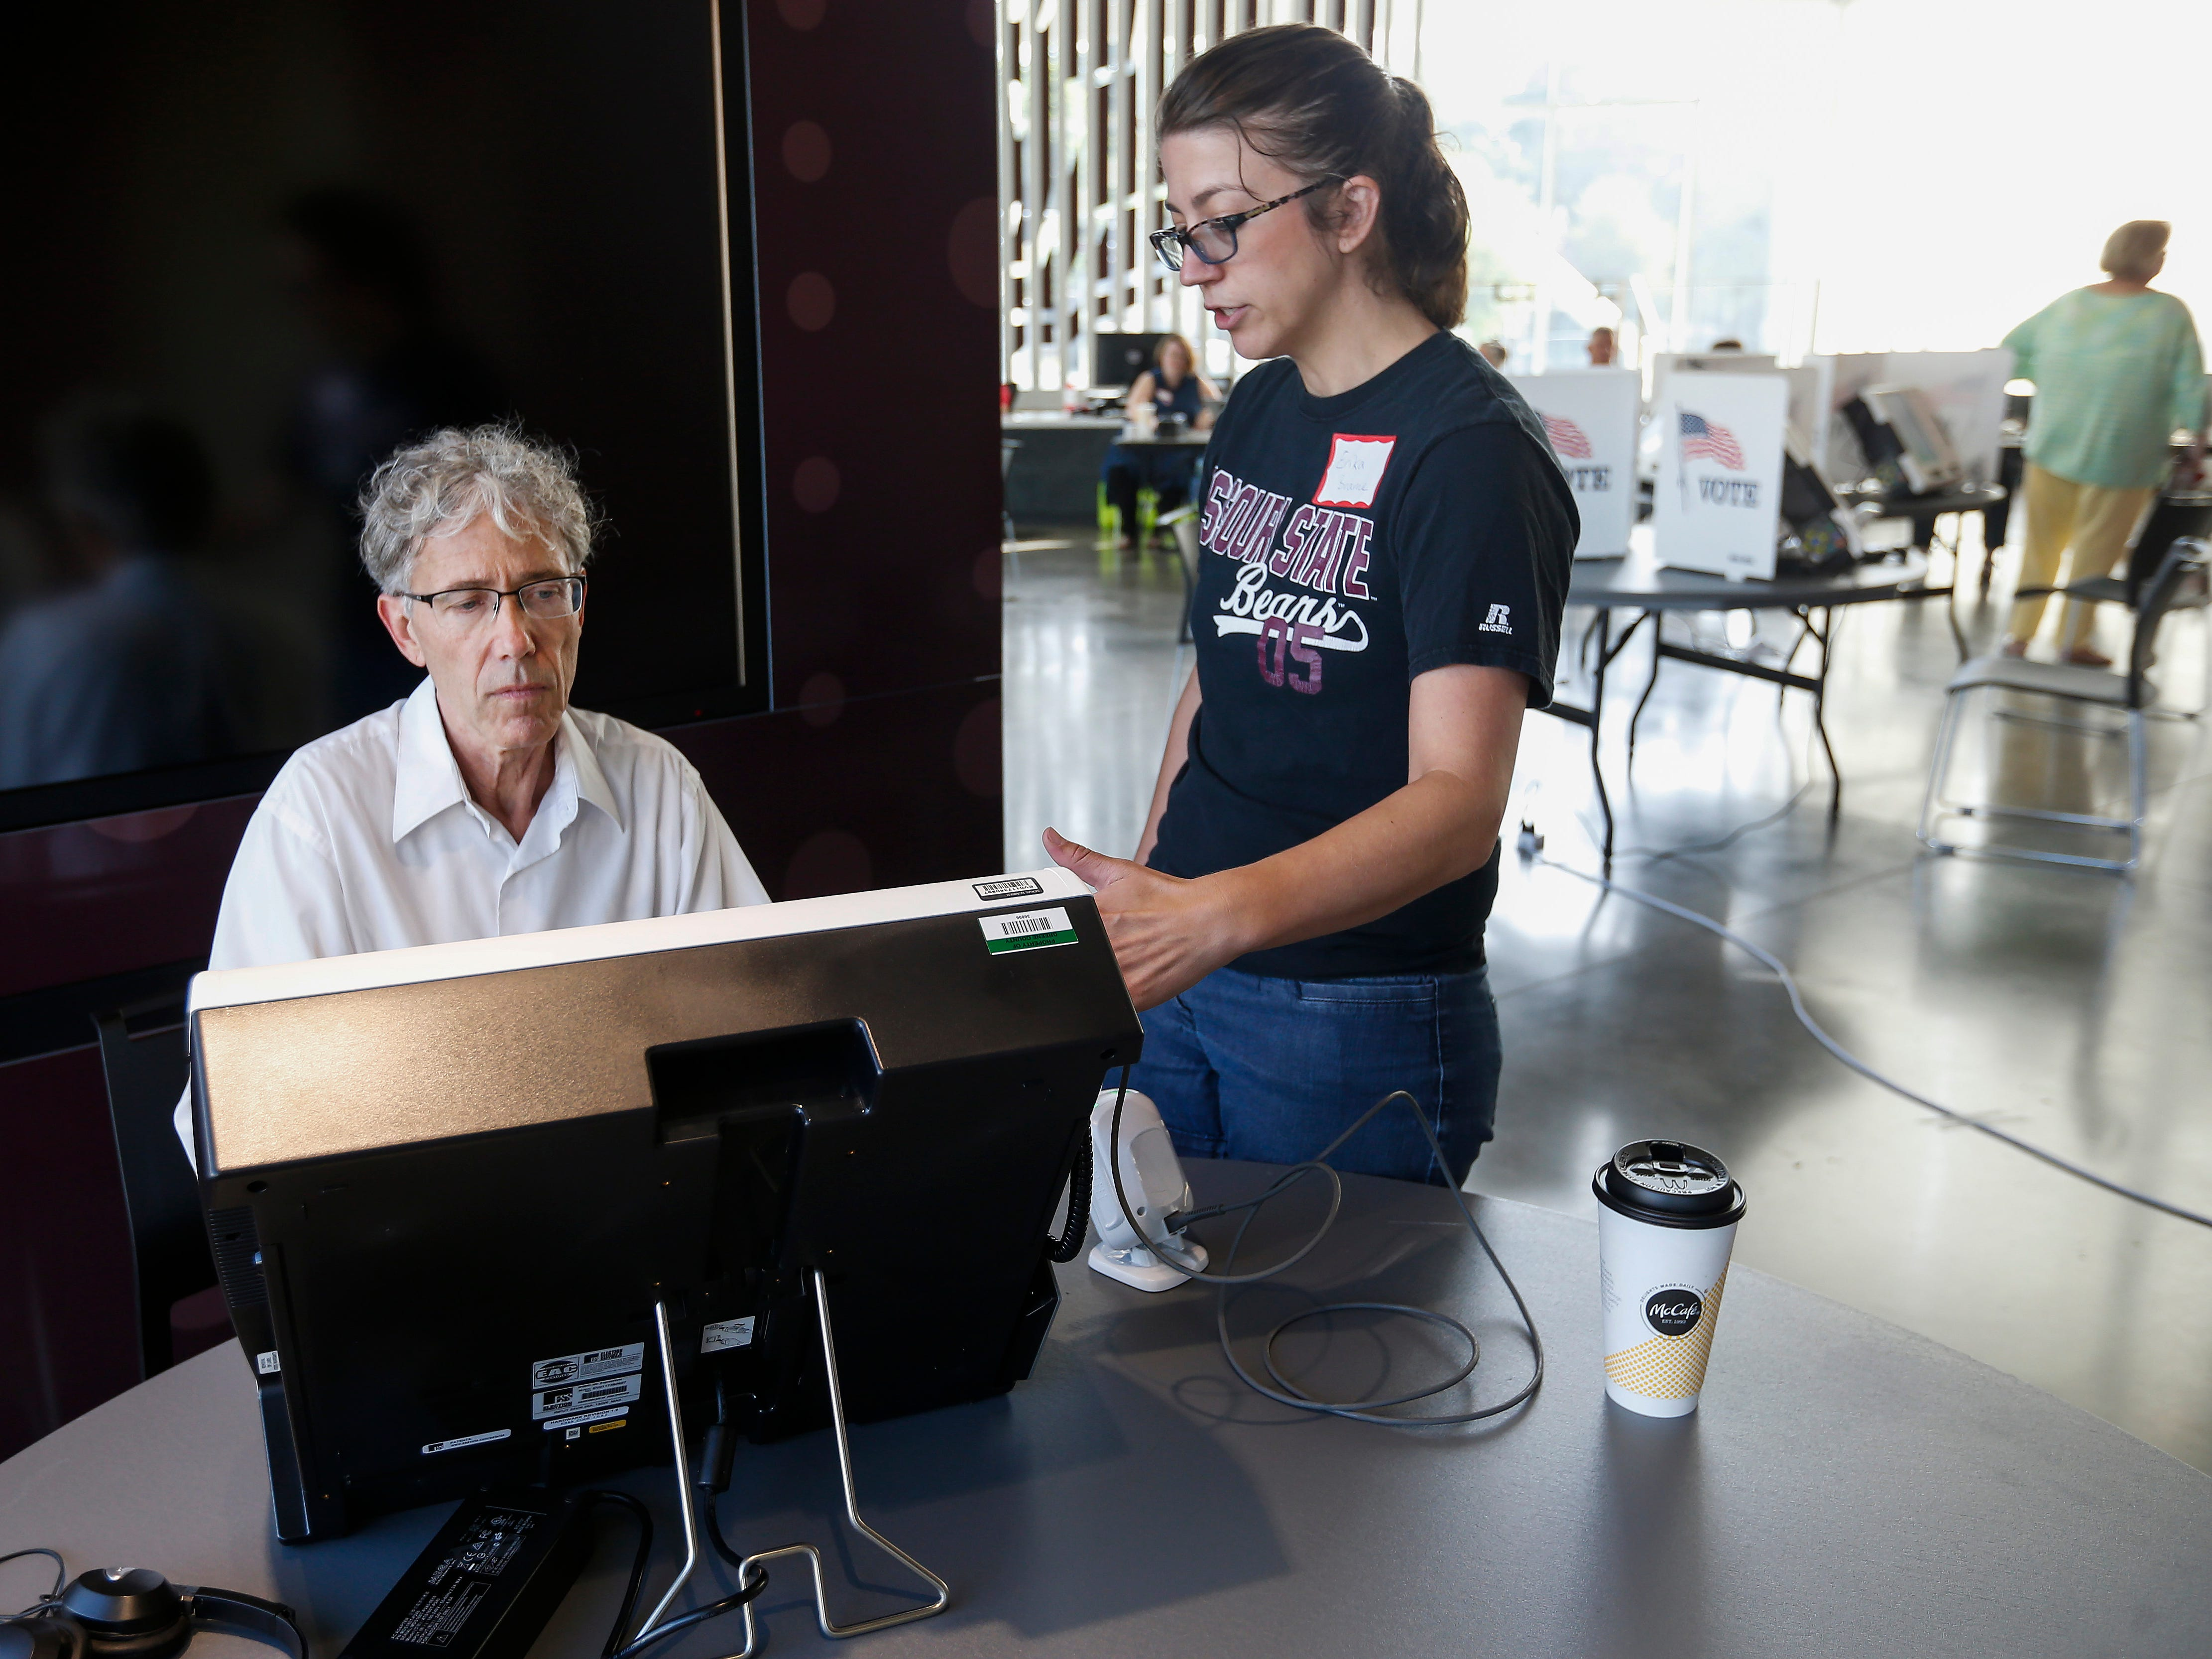 Election judge Erika Brame shows Mike Wills how to use the Express Vote machine at the Davis-Harrington Welcome Center at Missouri State University on Tuesday, Aug. 7, 2018.